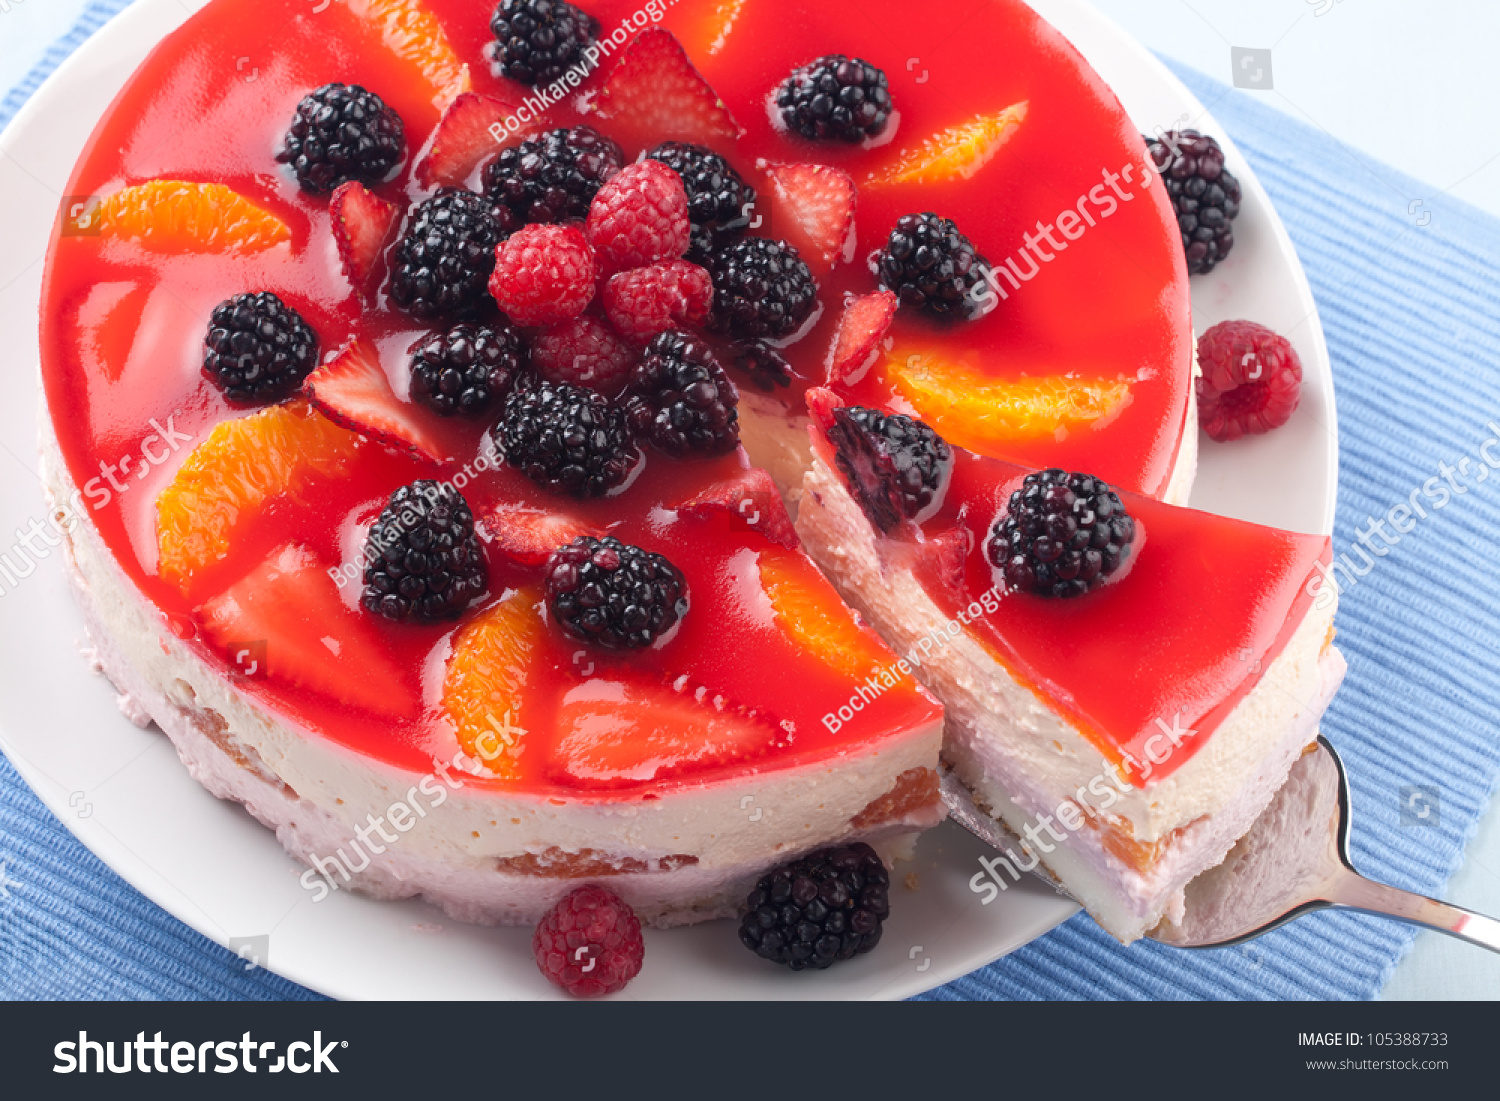 Cake With Fruit Yogurt : Fruit Yogurt Cake Cream Yogurt Based Stock Photo 105388733 ...